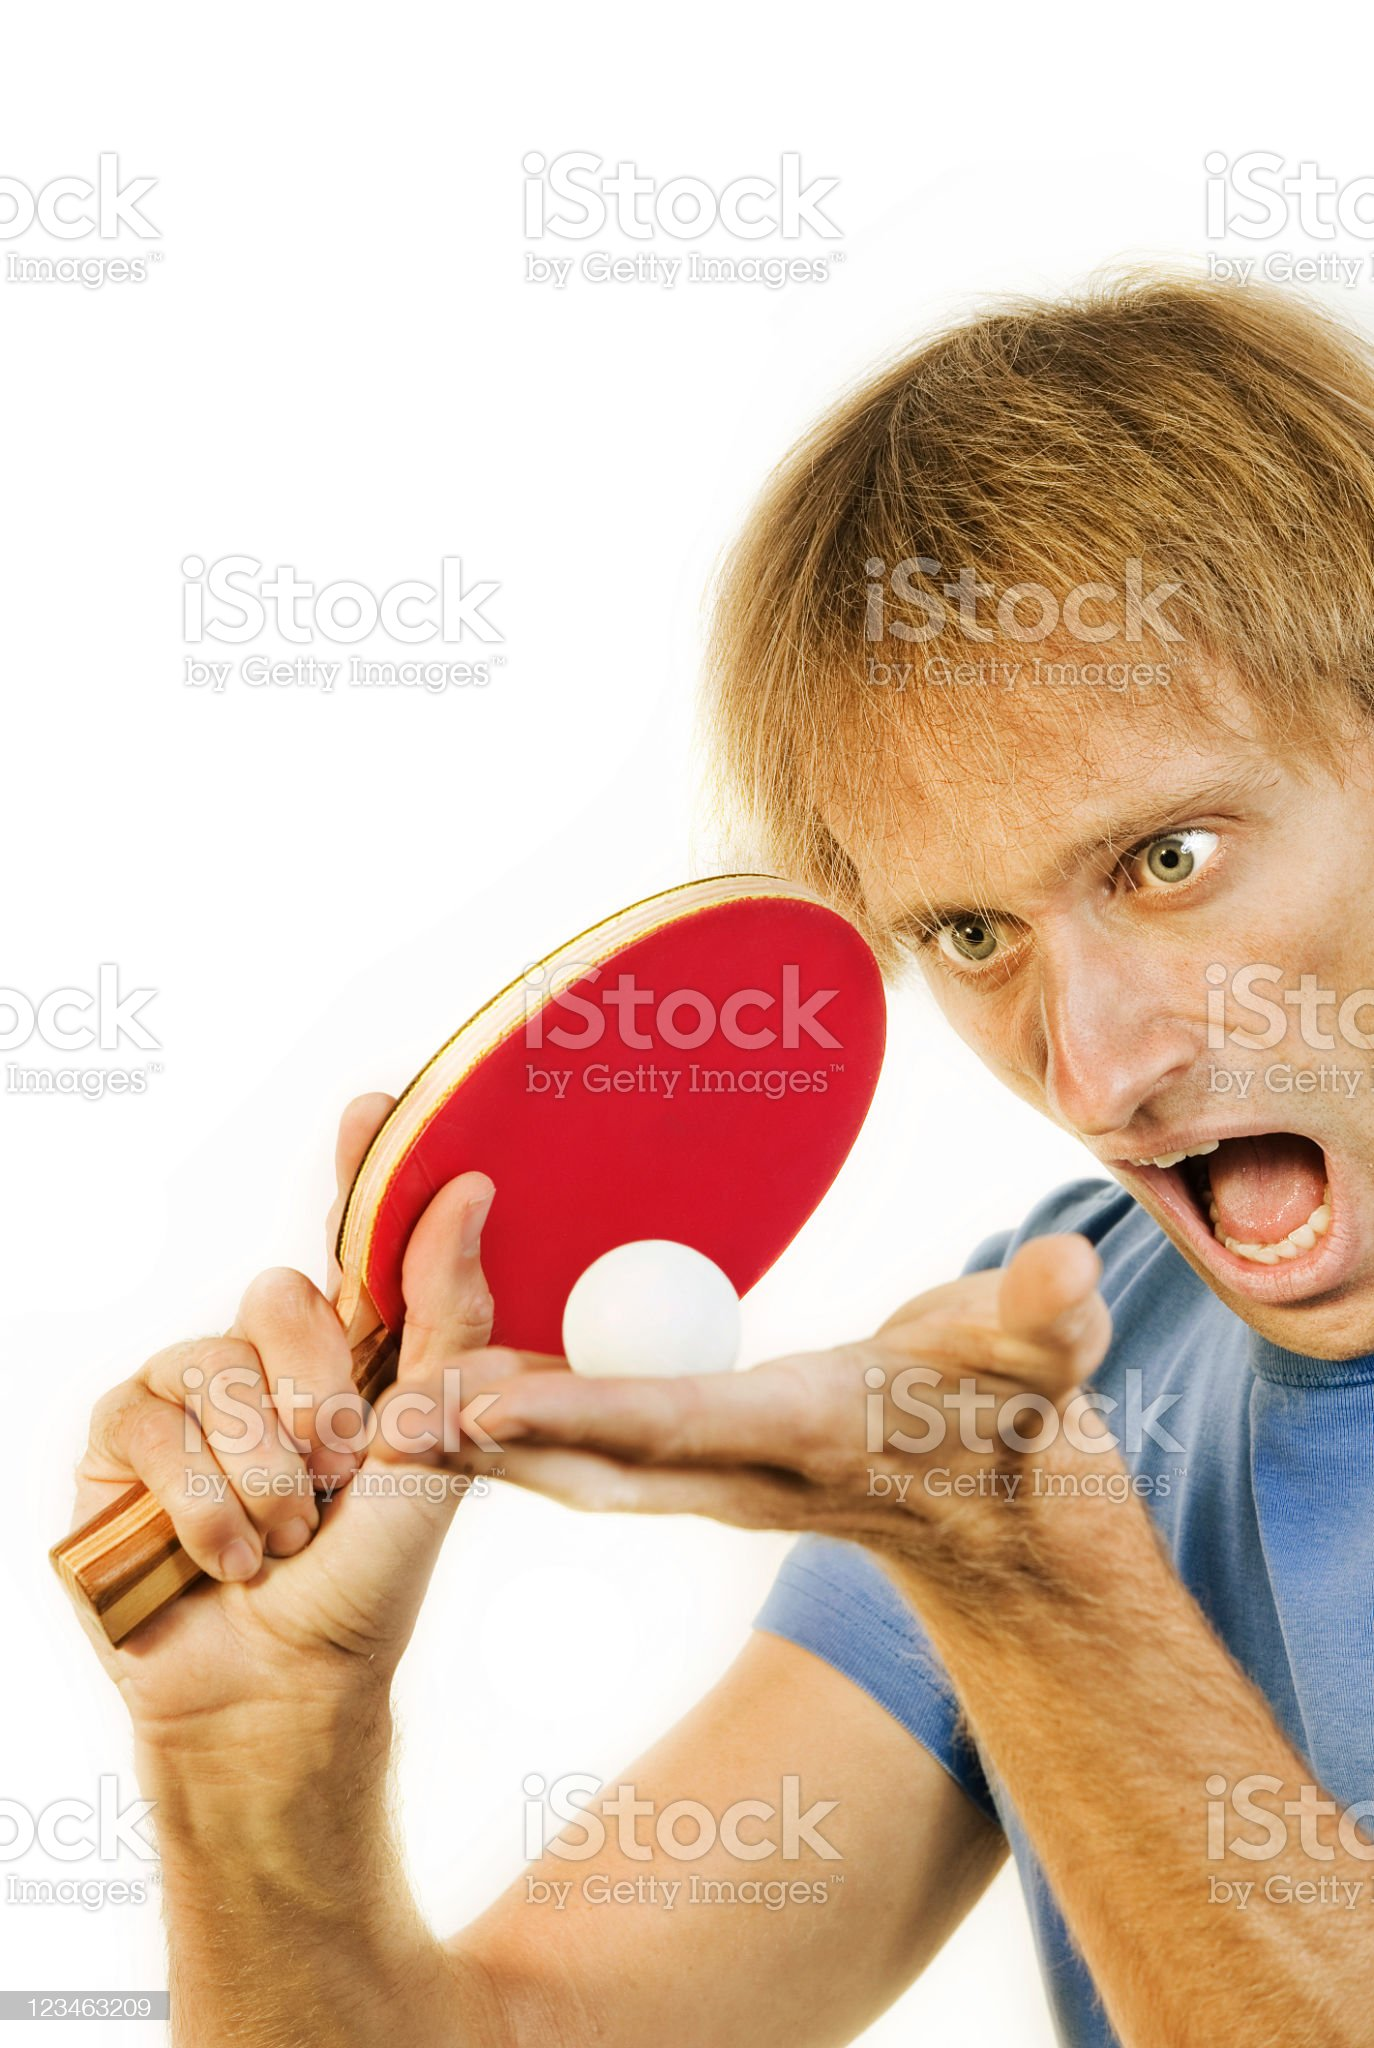 Serving table tennis player royalty-free stock photo